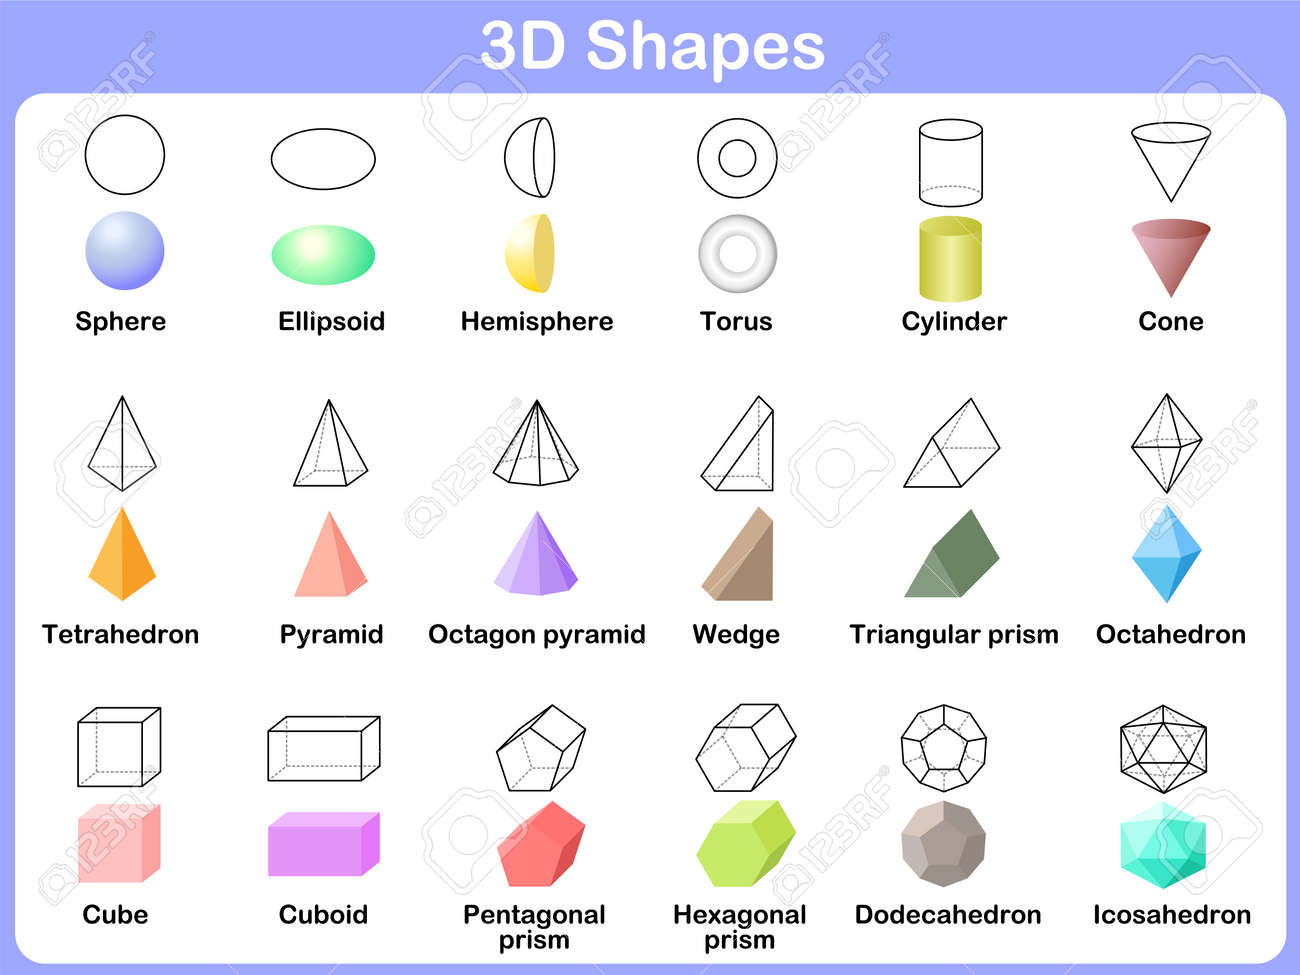 worksheet Learning Shapes shape 3d learning the shapes for kids royalty free cliparts vector kids